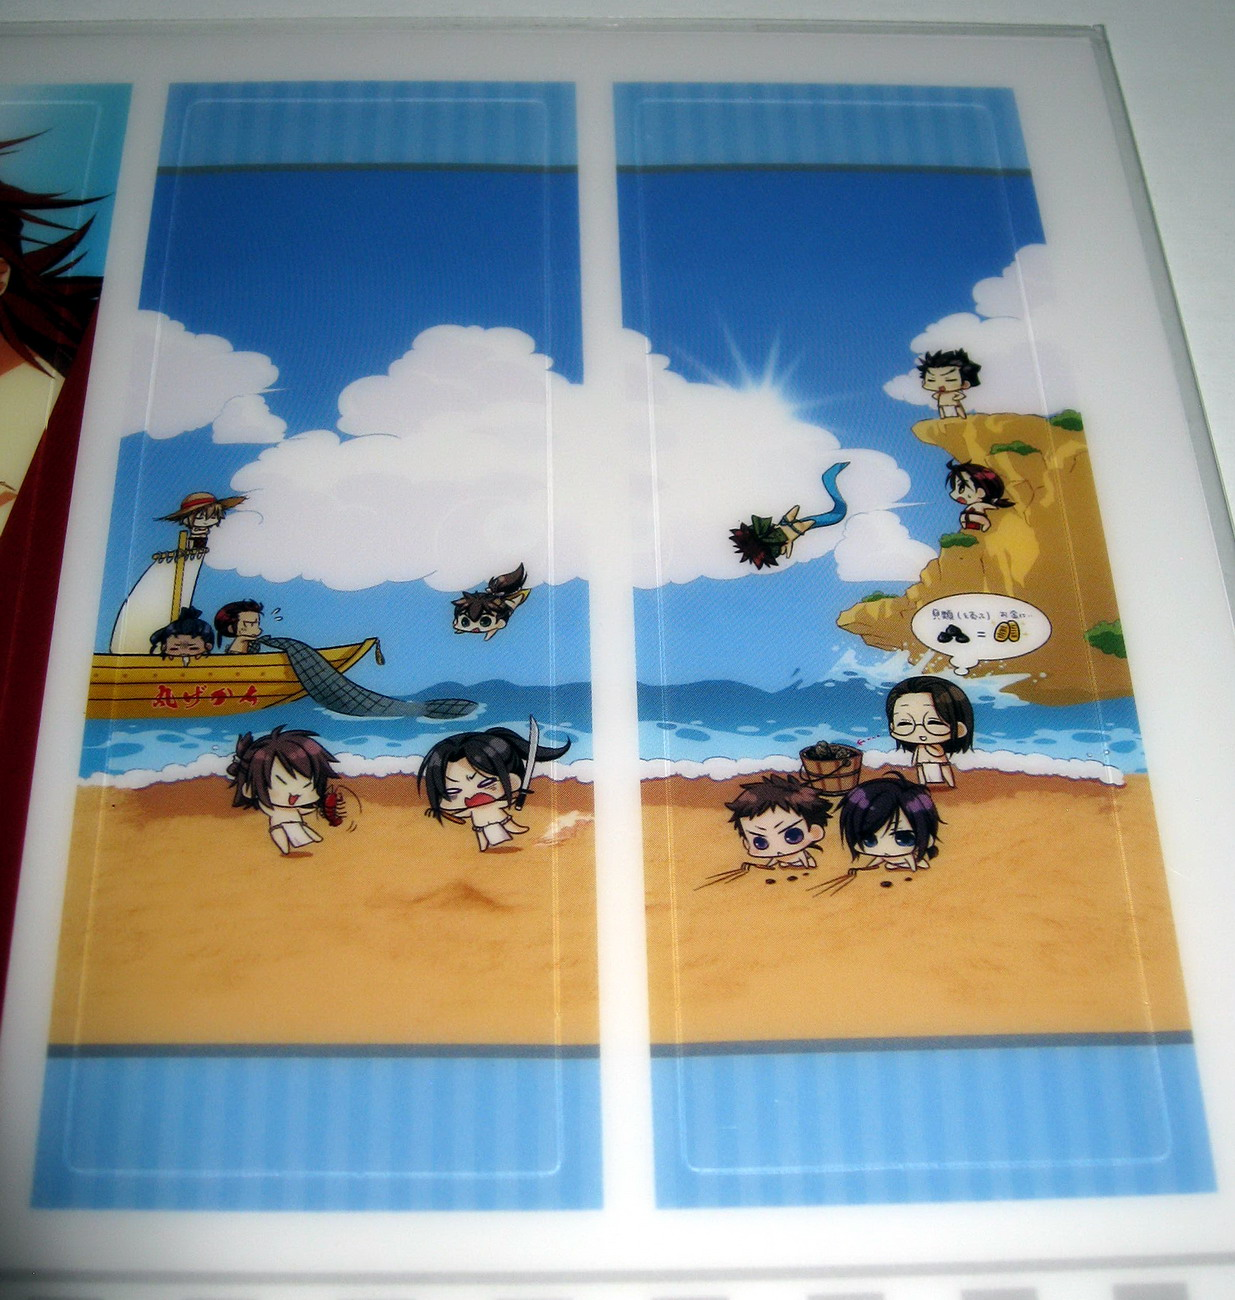 Hakuouki - bookmarks at the beach 2